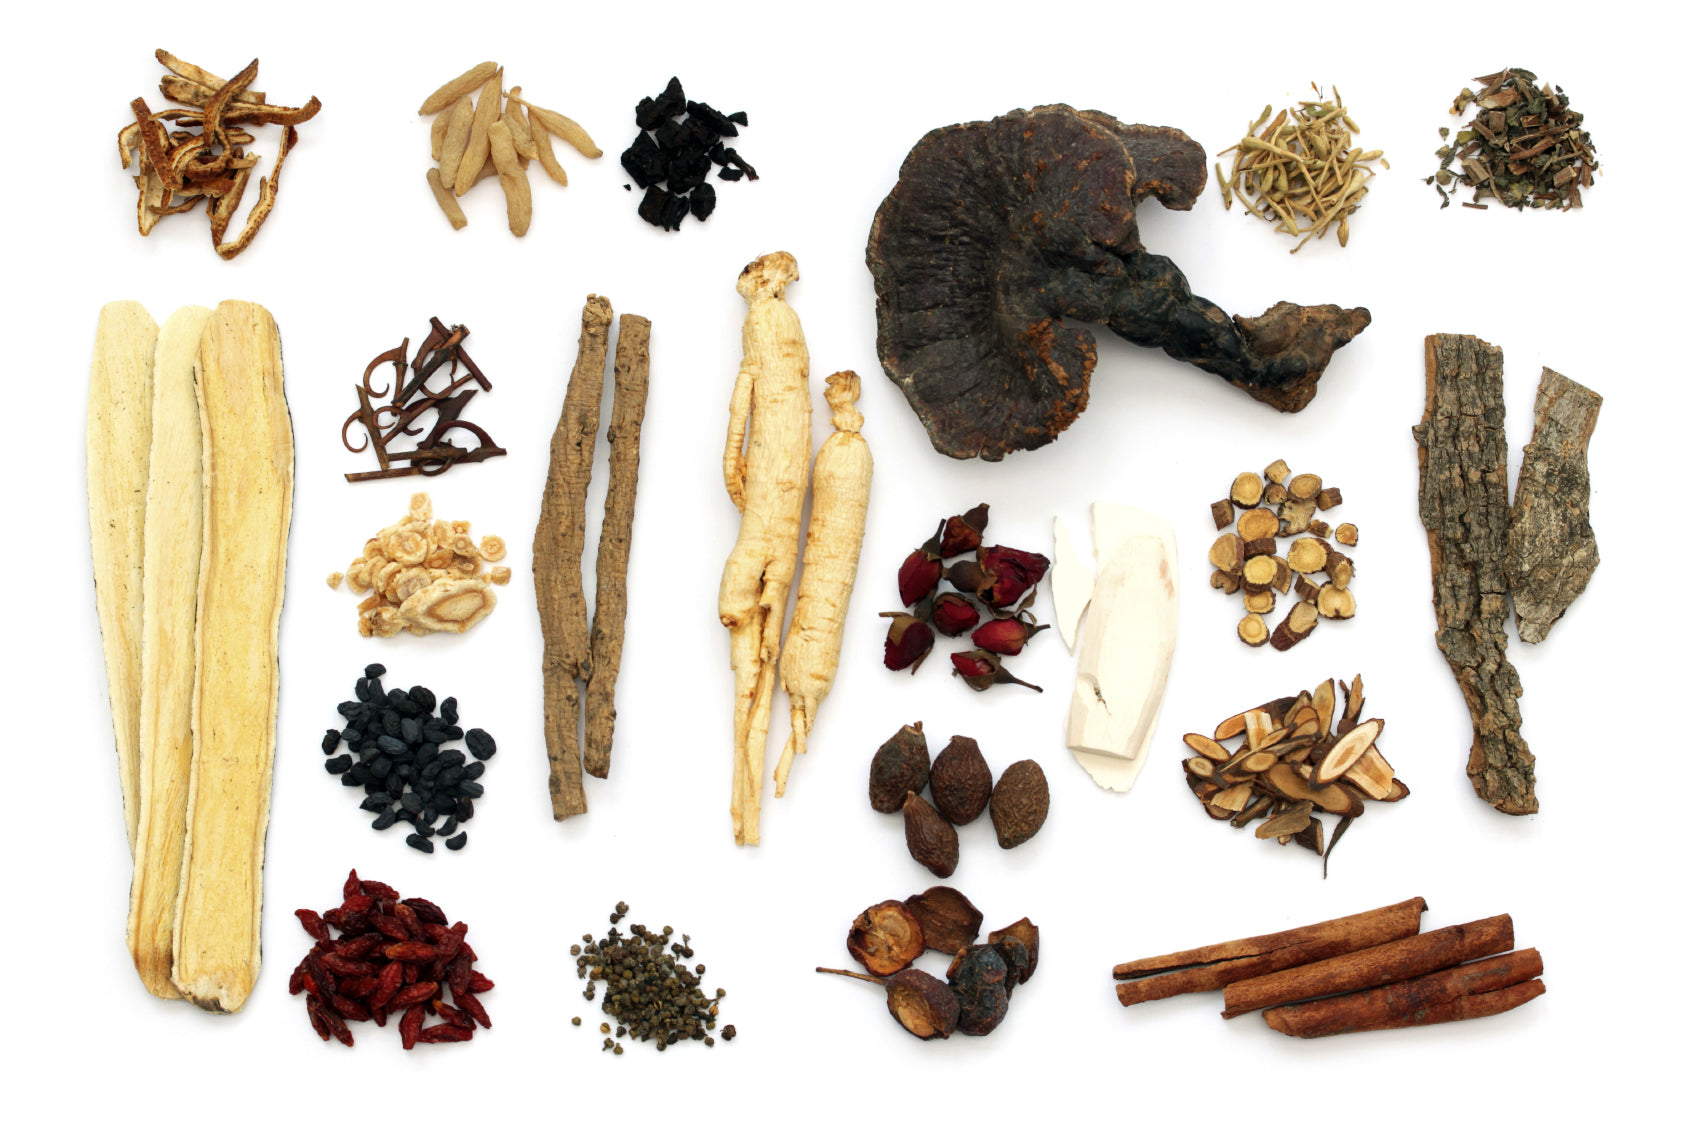 traditional chinese medicine, modern chinese medicine, tcm practitioner, chinese medicine practitioner, traditional chinese medicine herbs, ancient chinese medicine, tcm herbs, tcm medicine, traditional chinese medicine